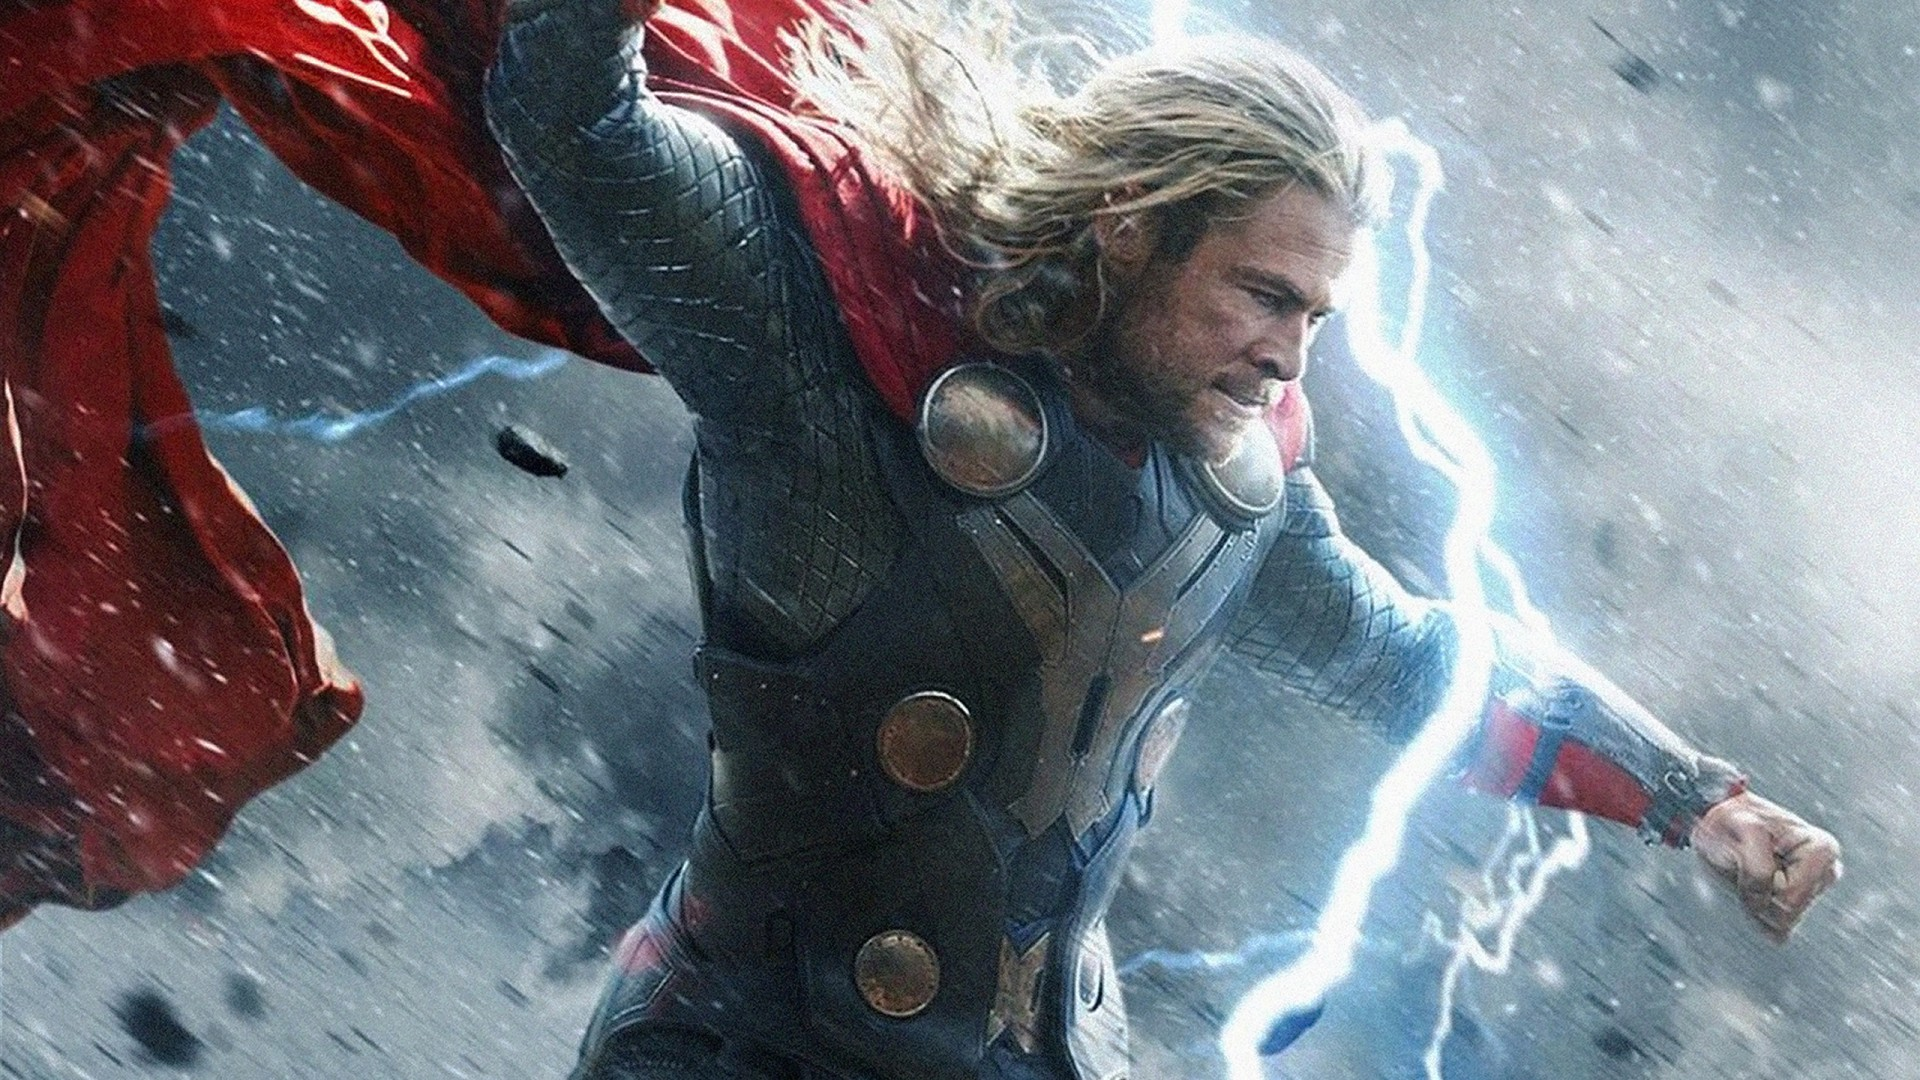 picture,universe,the,nighttime,reality,dark,movies,2,brunet,movie,world,motion picture,thor,twilight,humanity,film